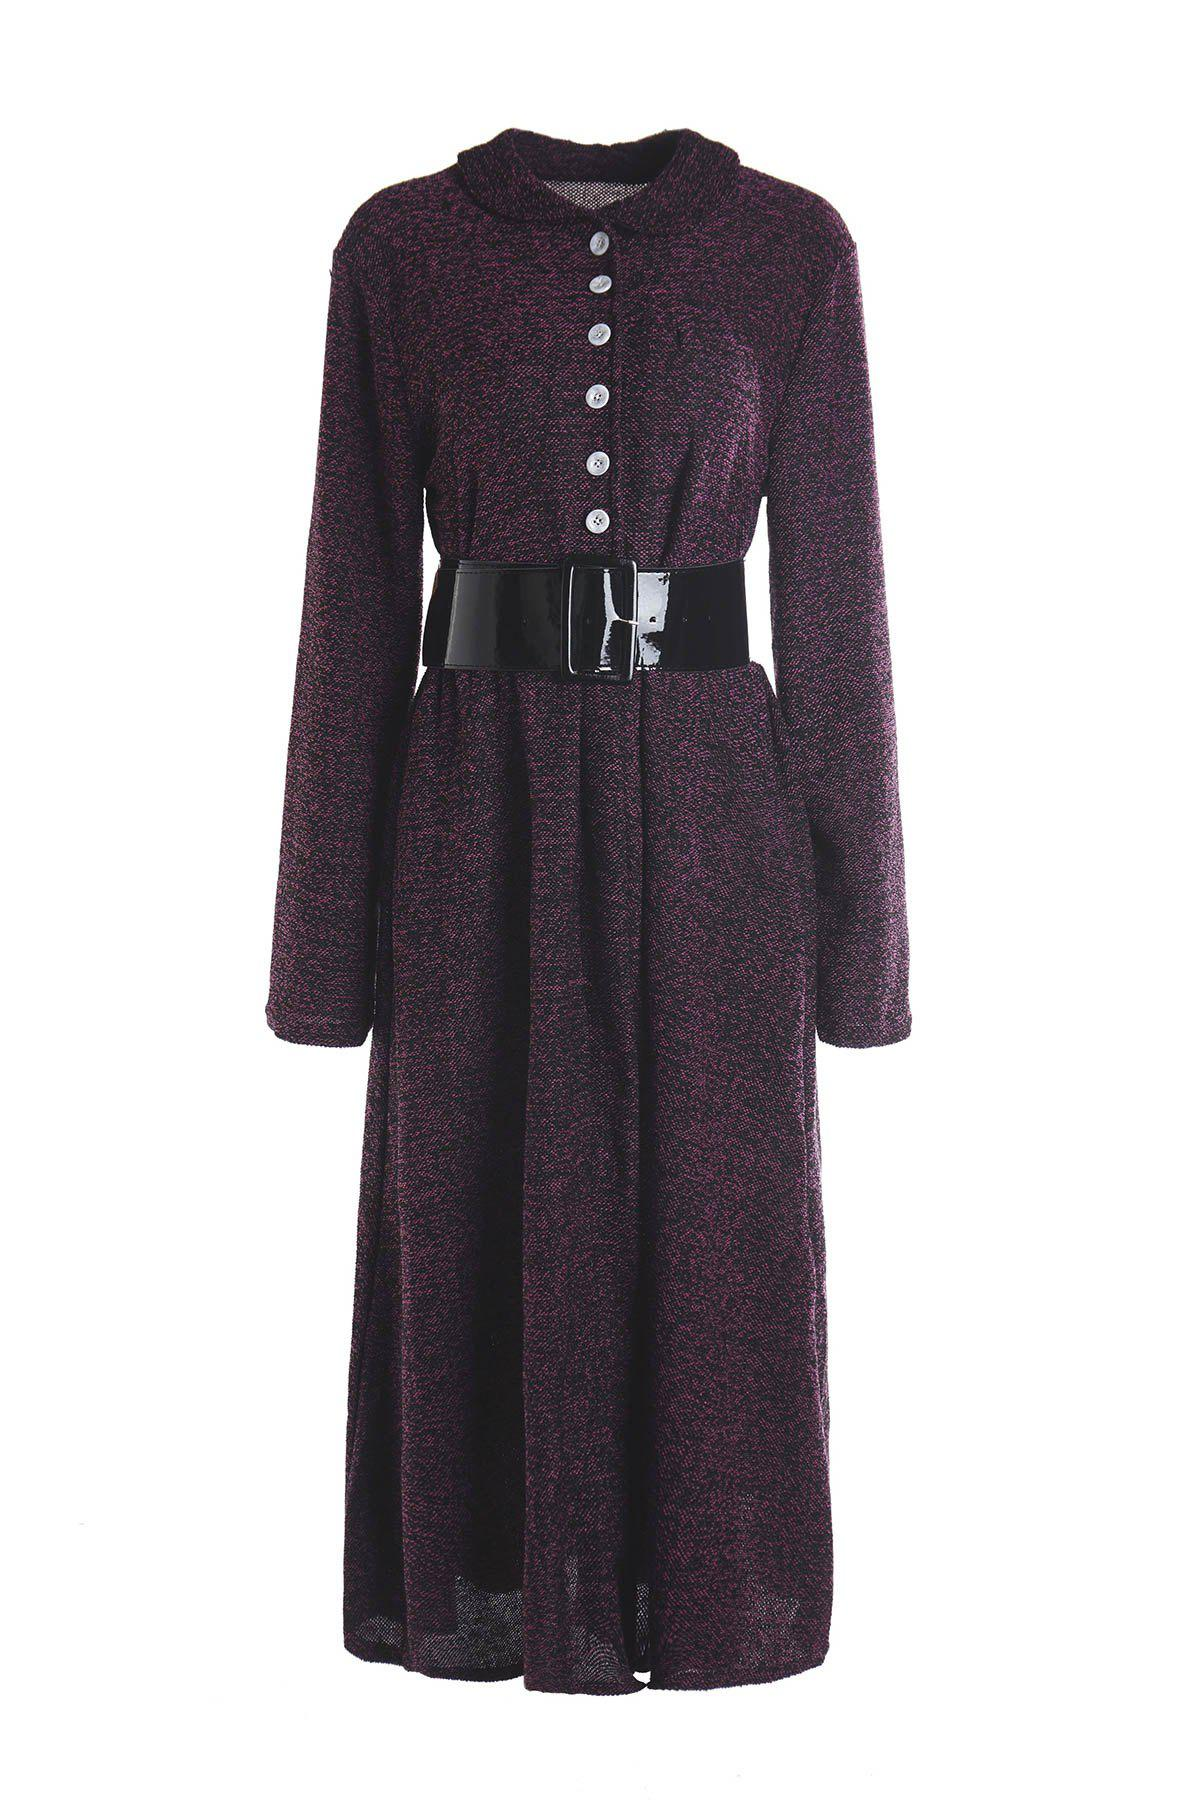 Affordable Vintage Turn-Down Collar Long Sleeve A-Line Dress For Women